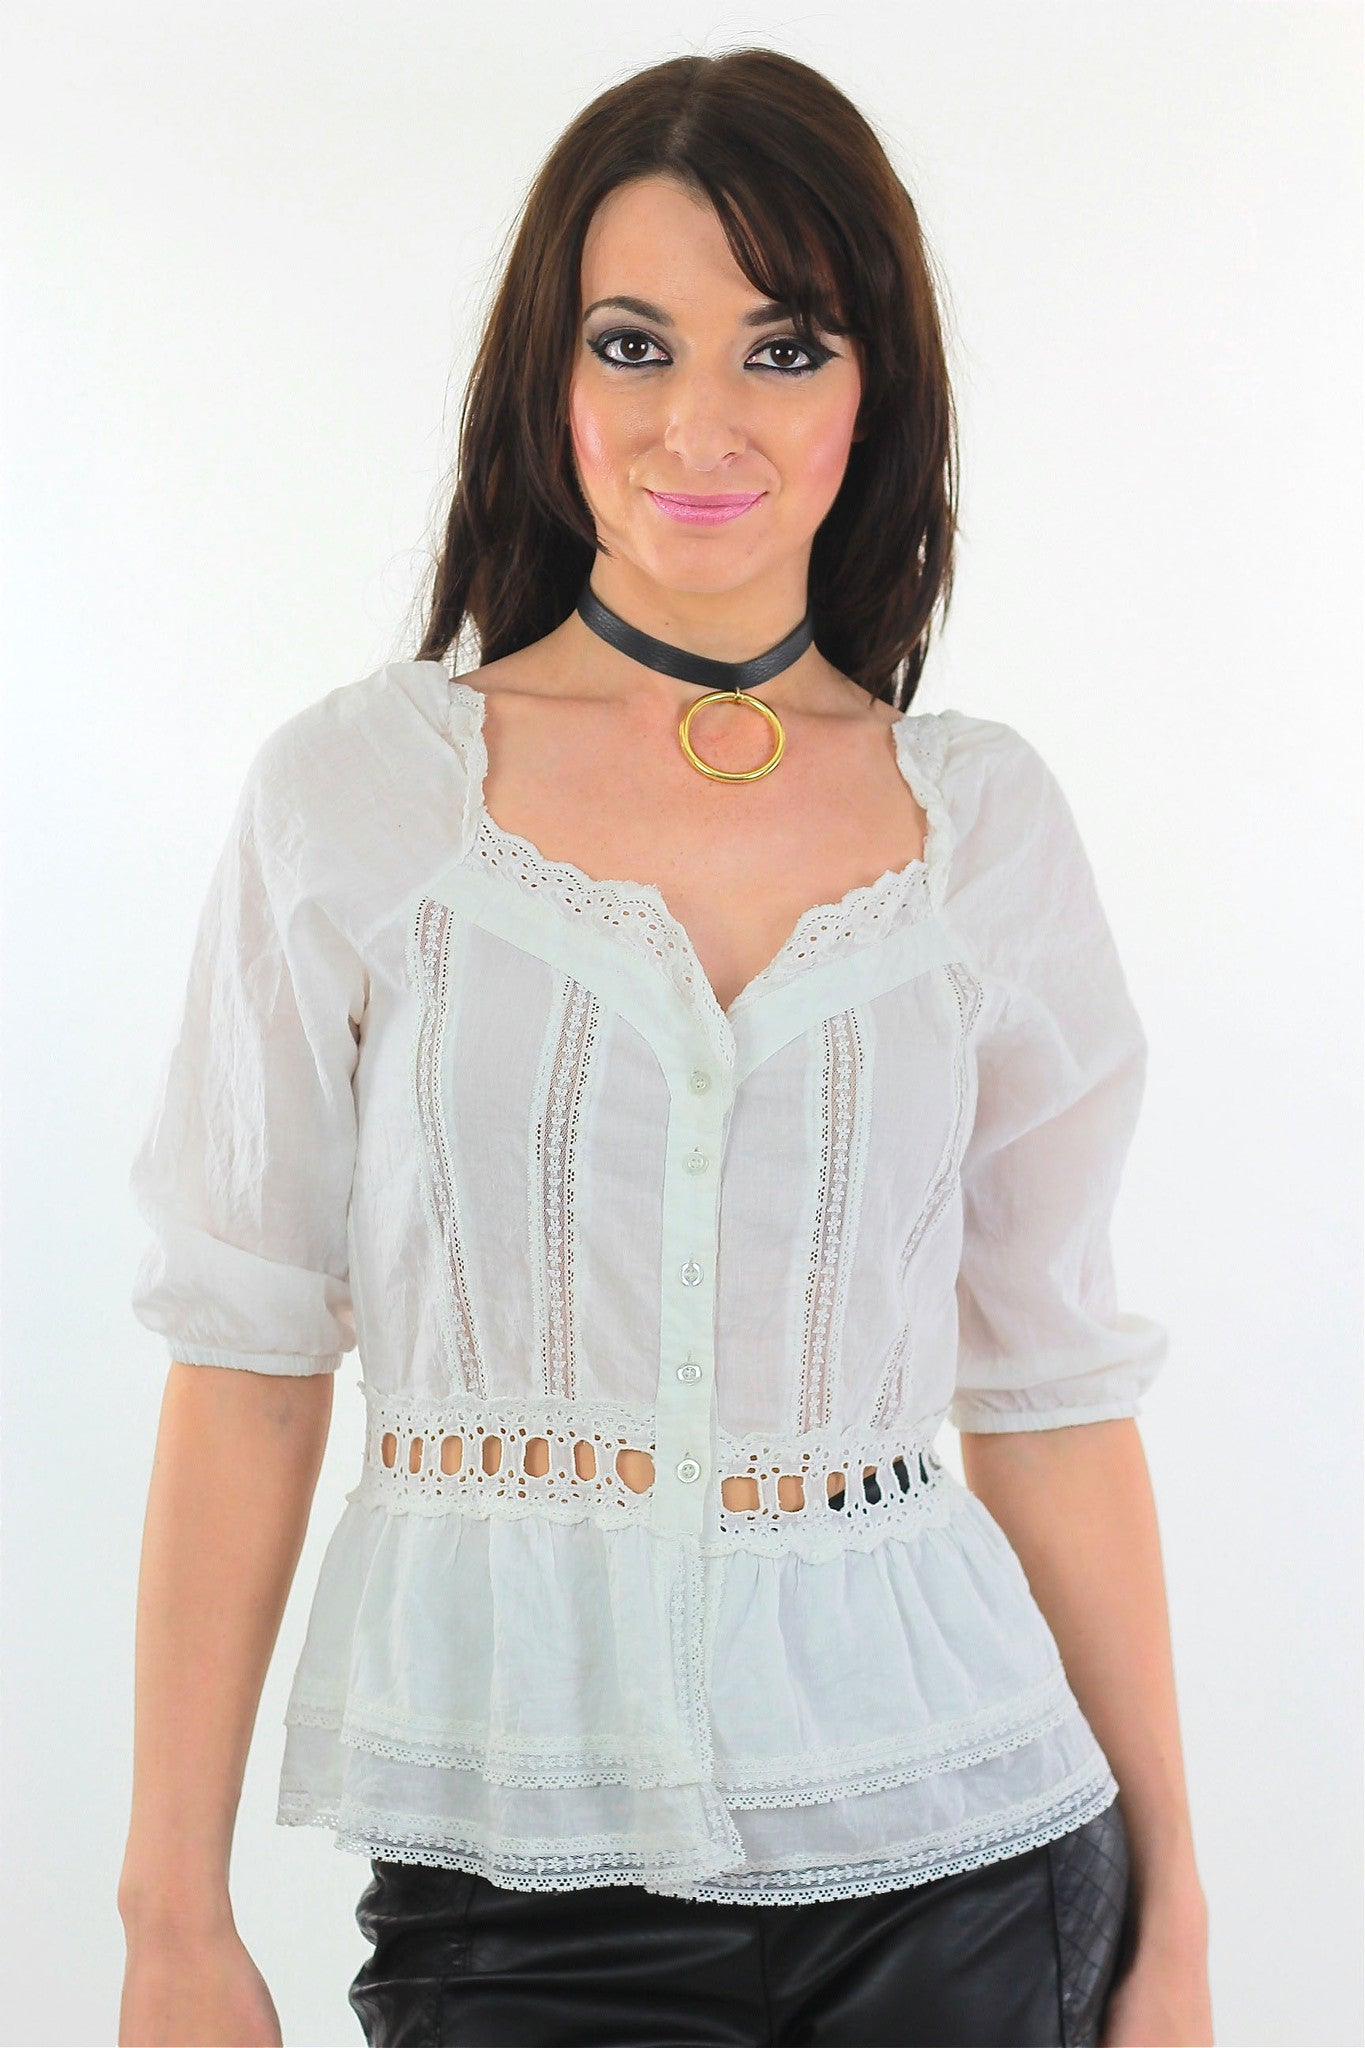 a8dca718be22c 90s White lace top Vintage Festival sheer Hippie Shirt - shabbybabe - 1